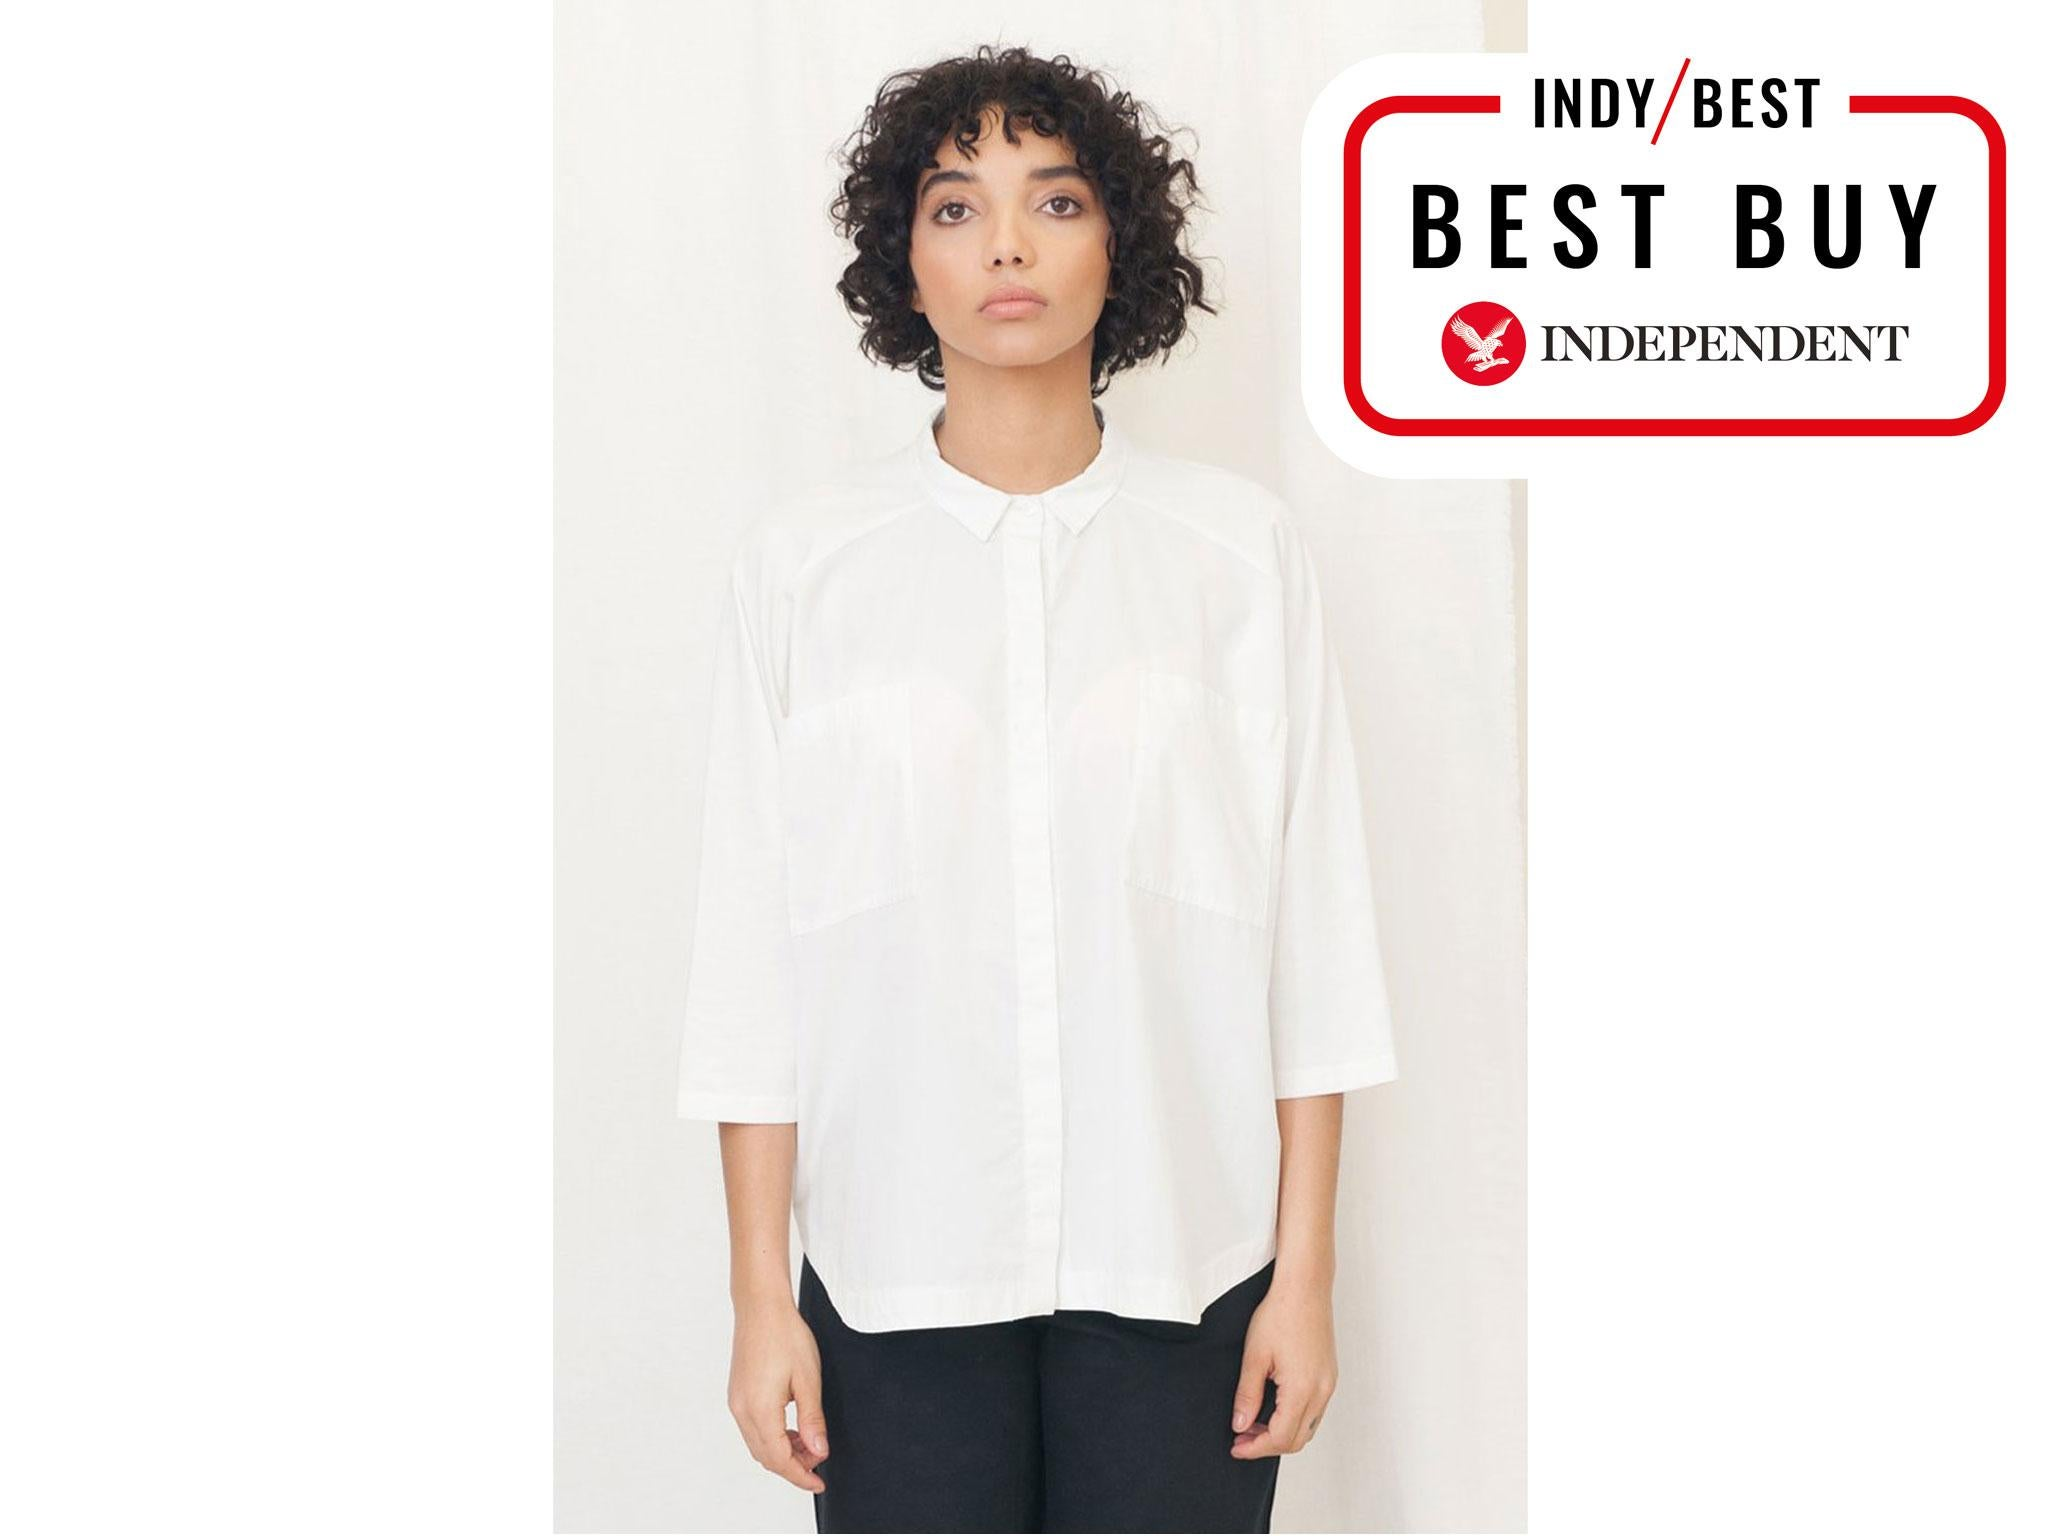 bc28d1b7f7 Beaumont Organic Stephanie Organic Cotton Shirt in White  £120